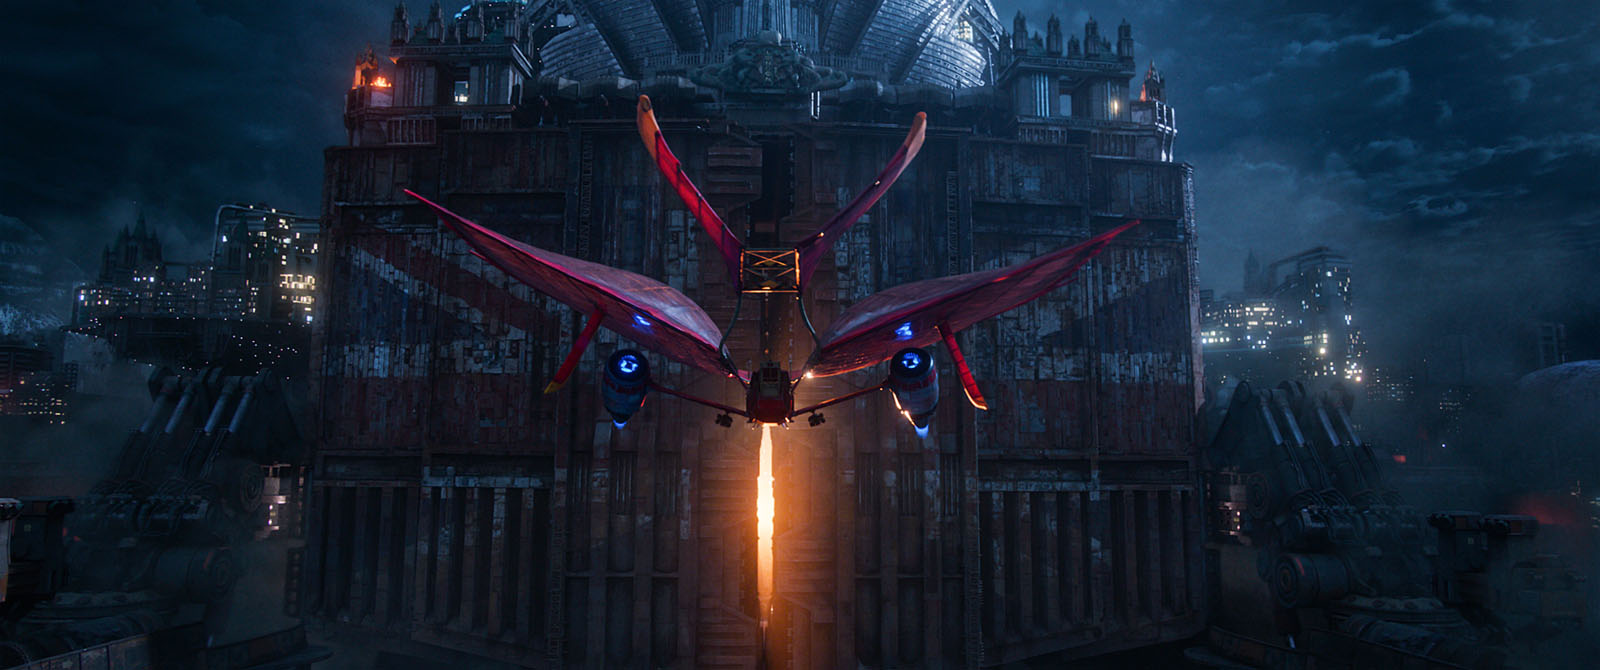 A steampunk airplane in MORTAL ENGINES (2018)